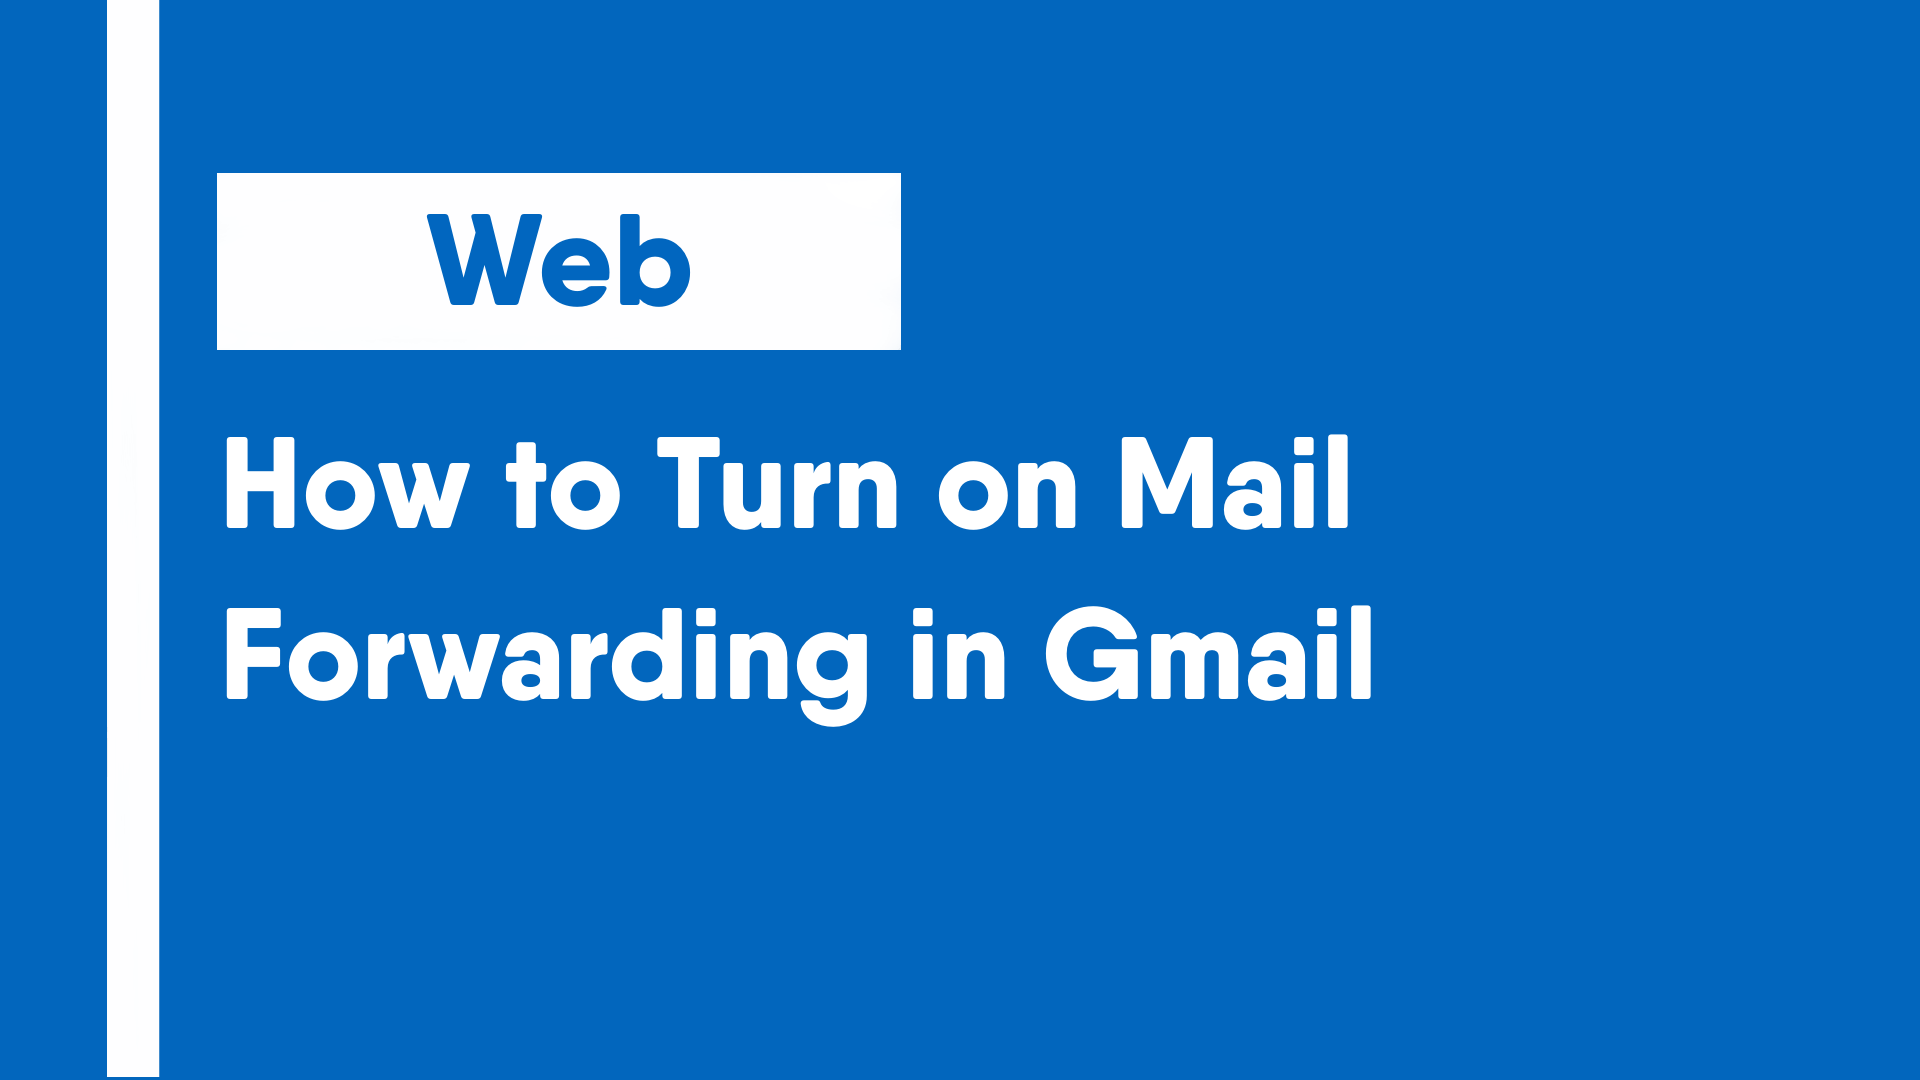 How to Turn on Mail Forwarding in Gmail